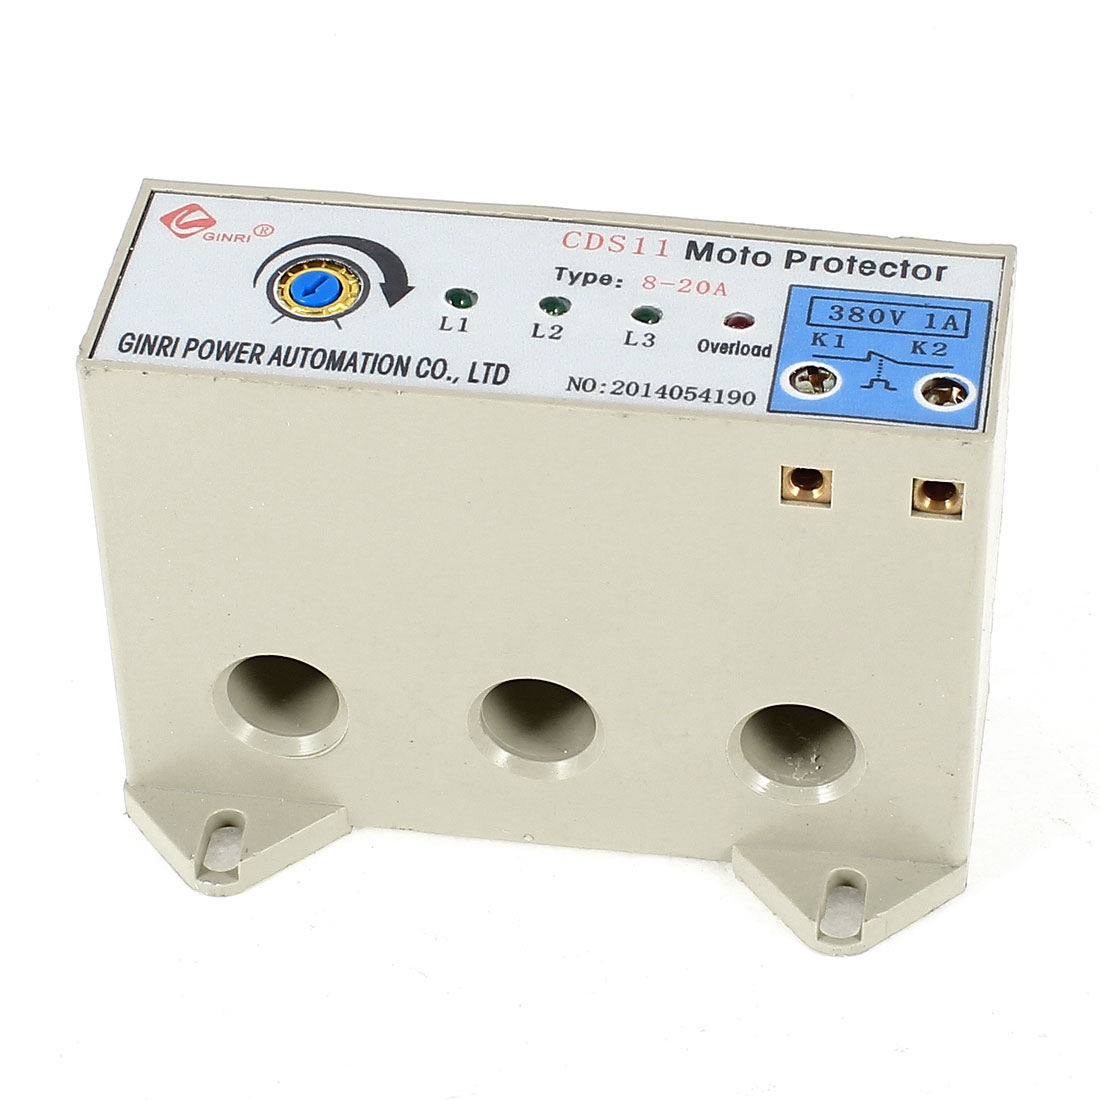 CDS-11/8-20A 3 Phase 8-20 Ampere Adjustable Current Breaker Motor Circuit Protector Non Power